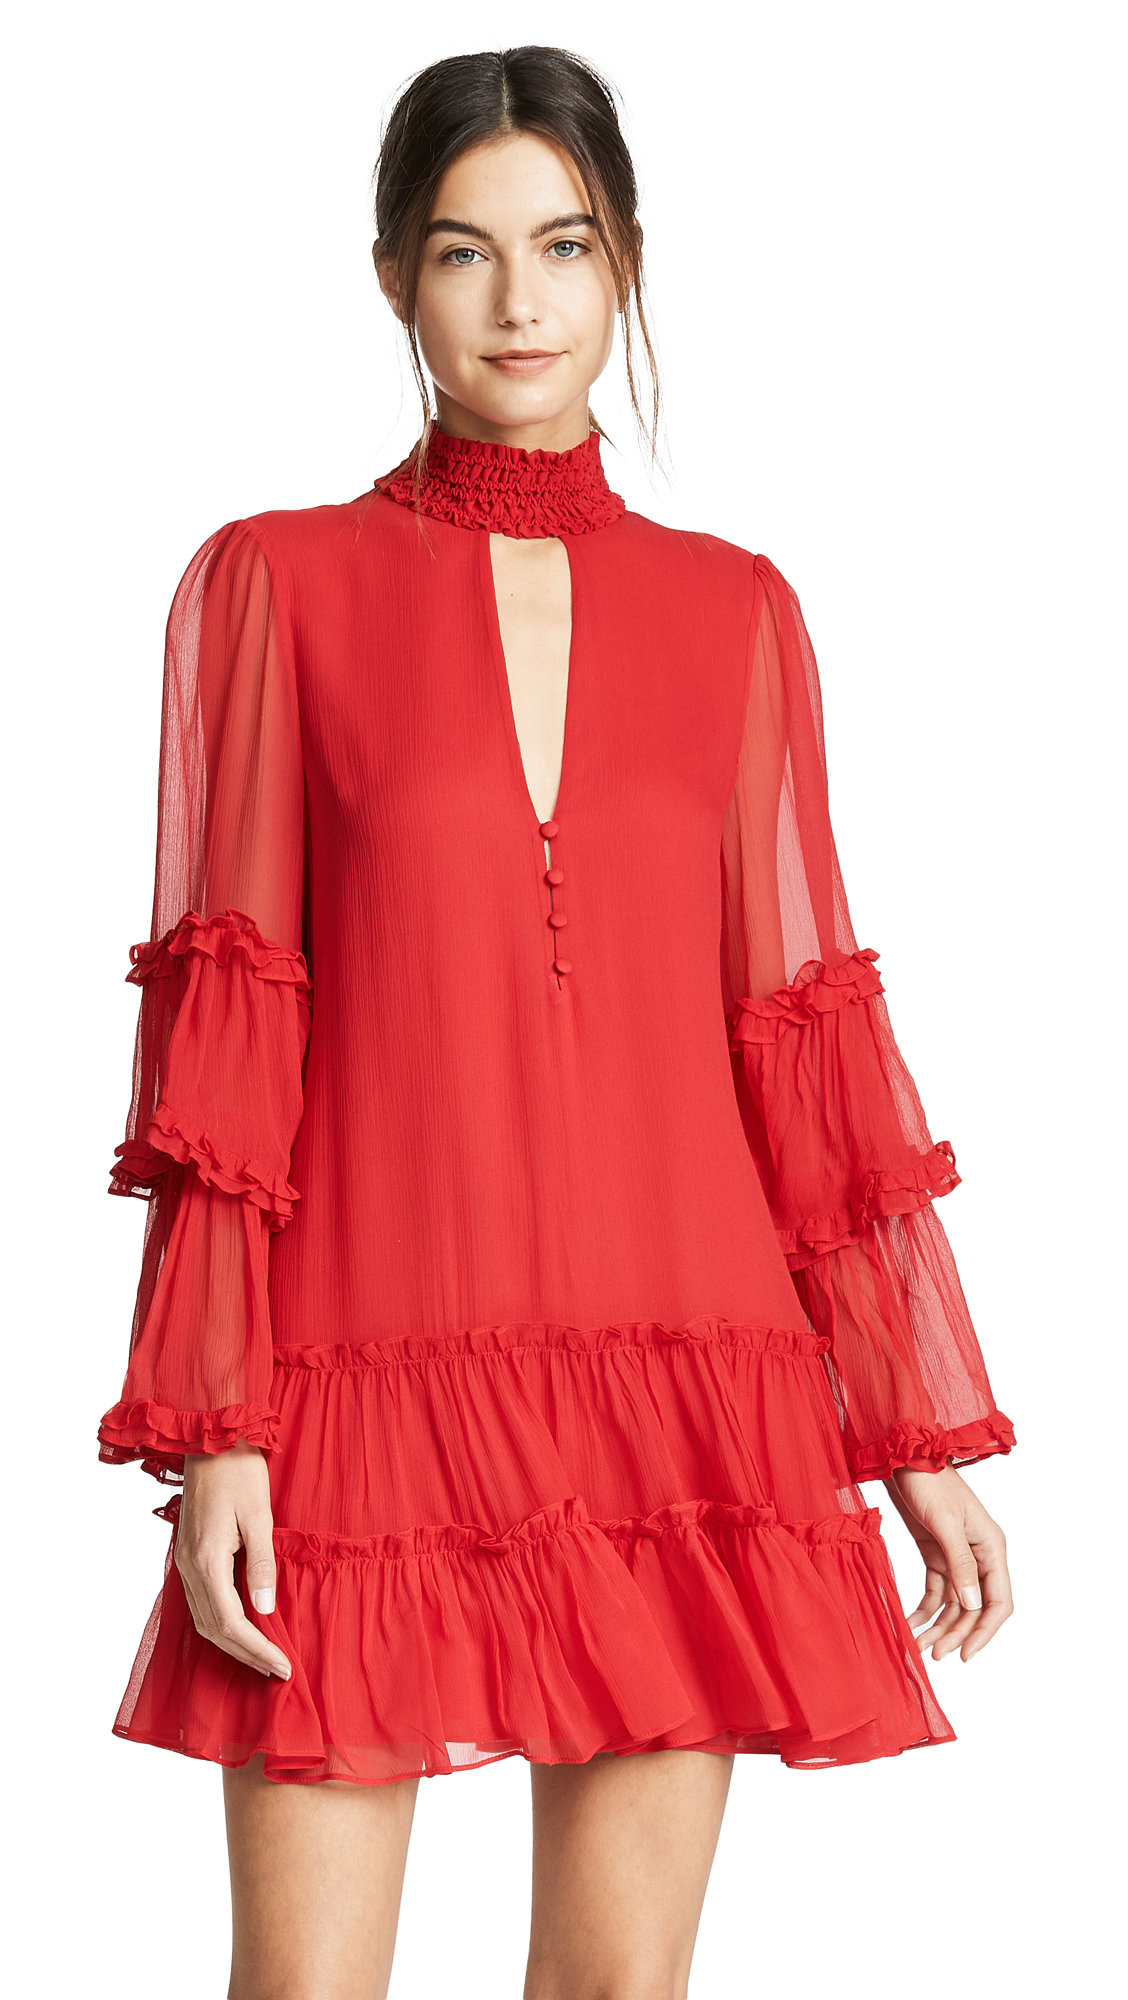 Alexis Naoko Dress - Red